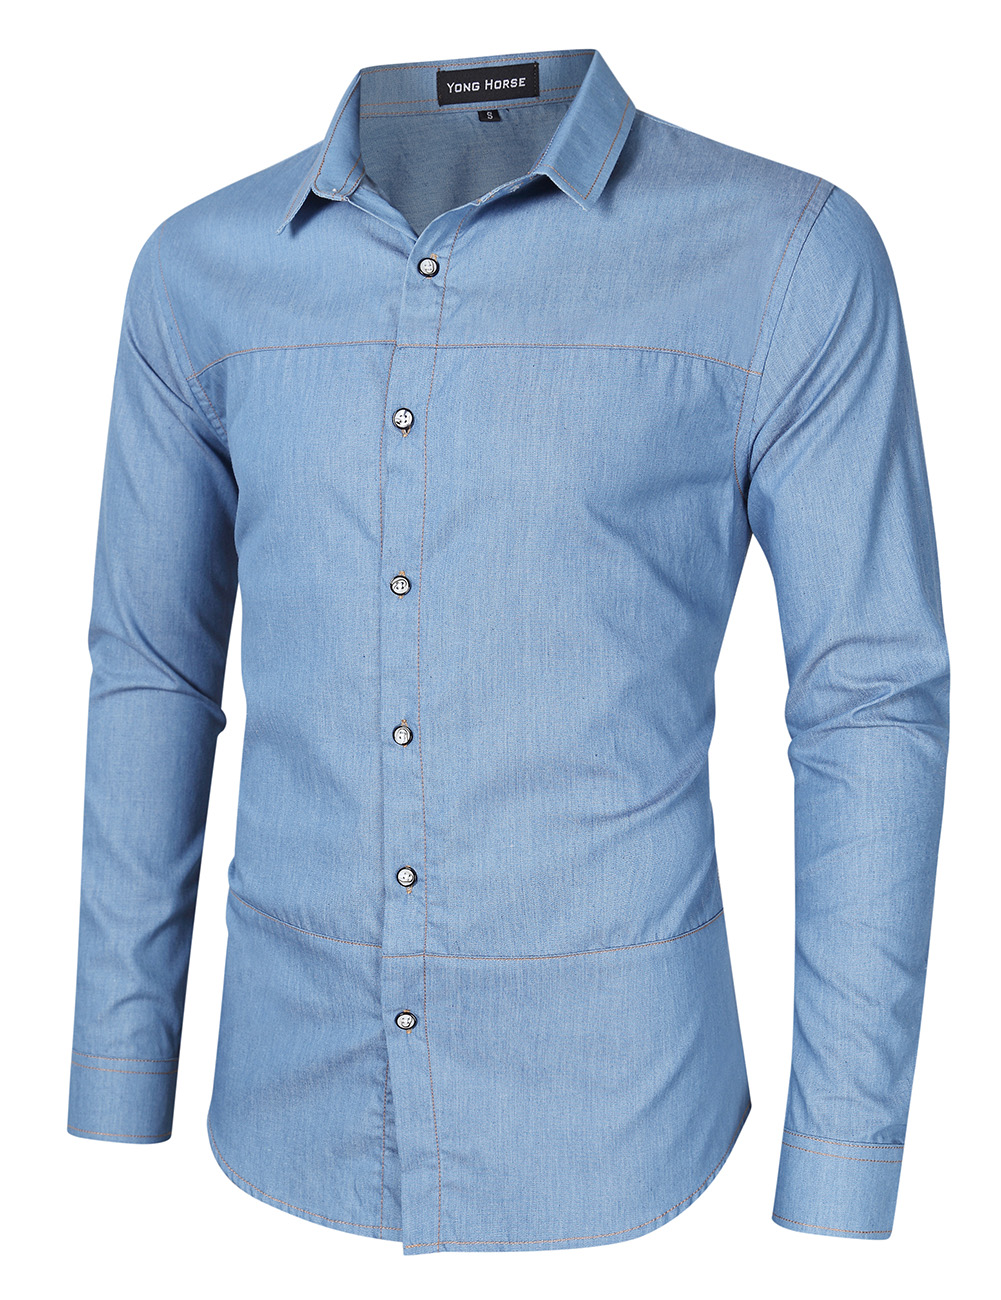 Yong Horse Men's Long Sleeve Denim Shirt